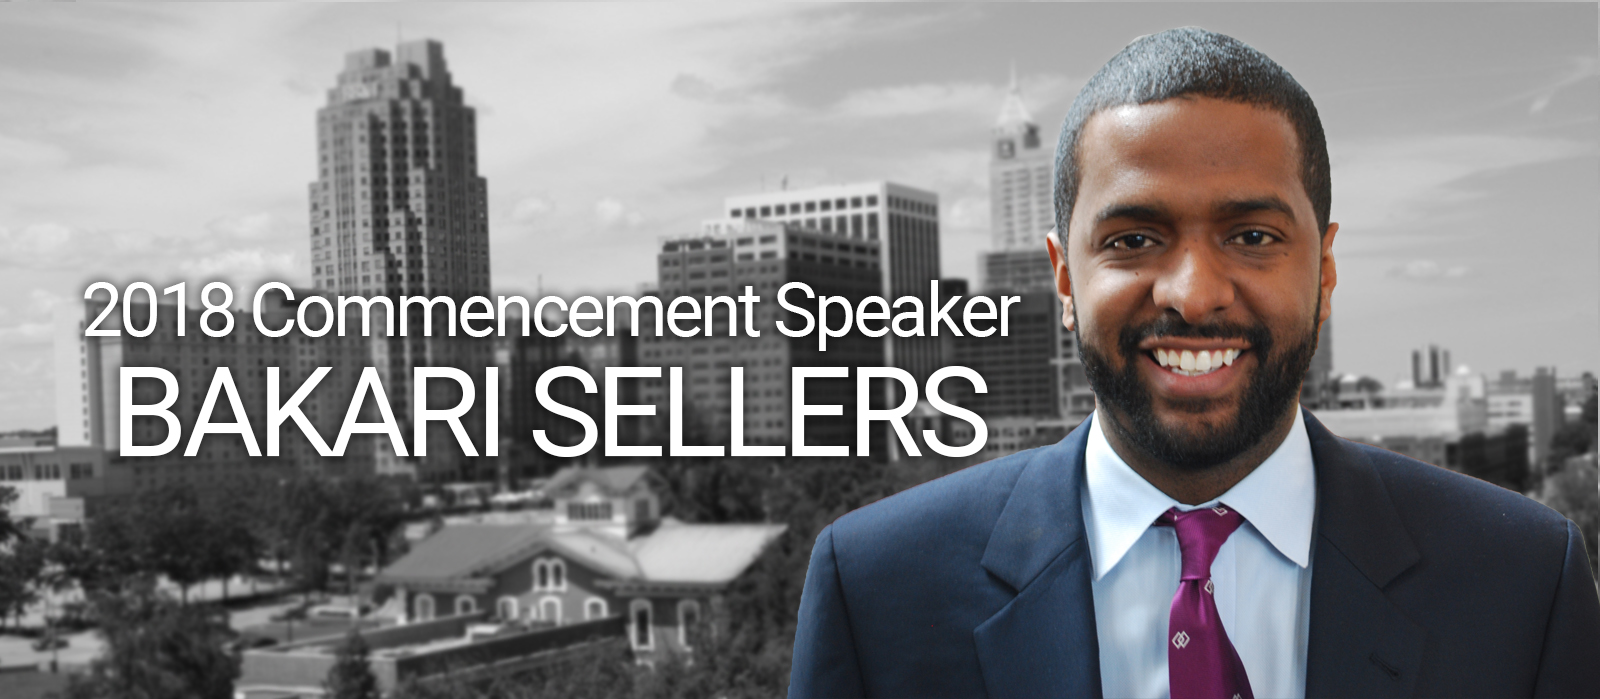 Bakari Sellars 2018 Commencement Speaker